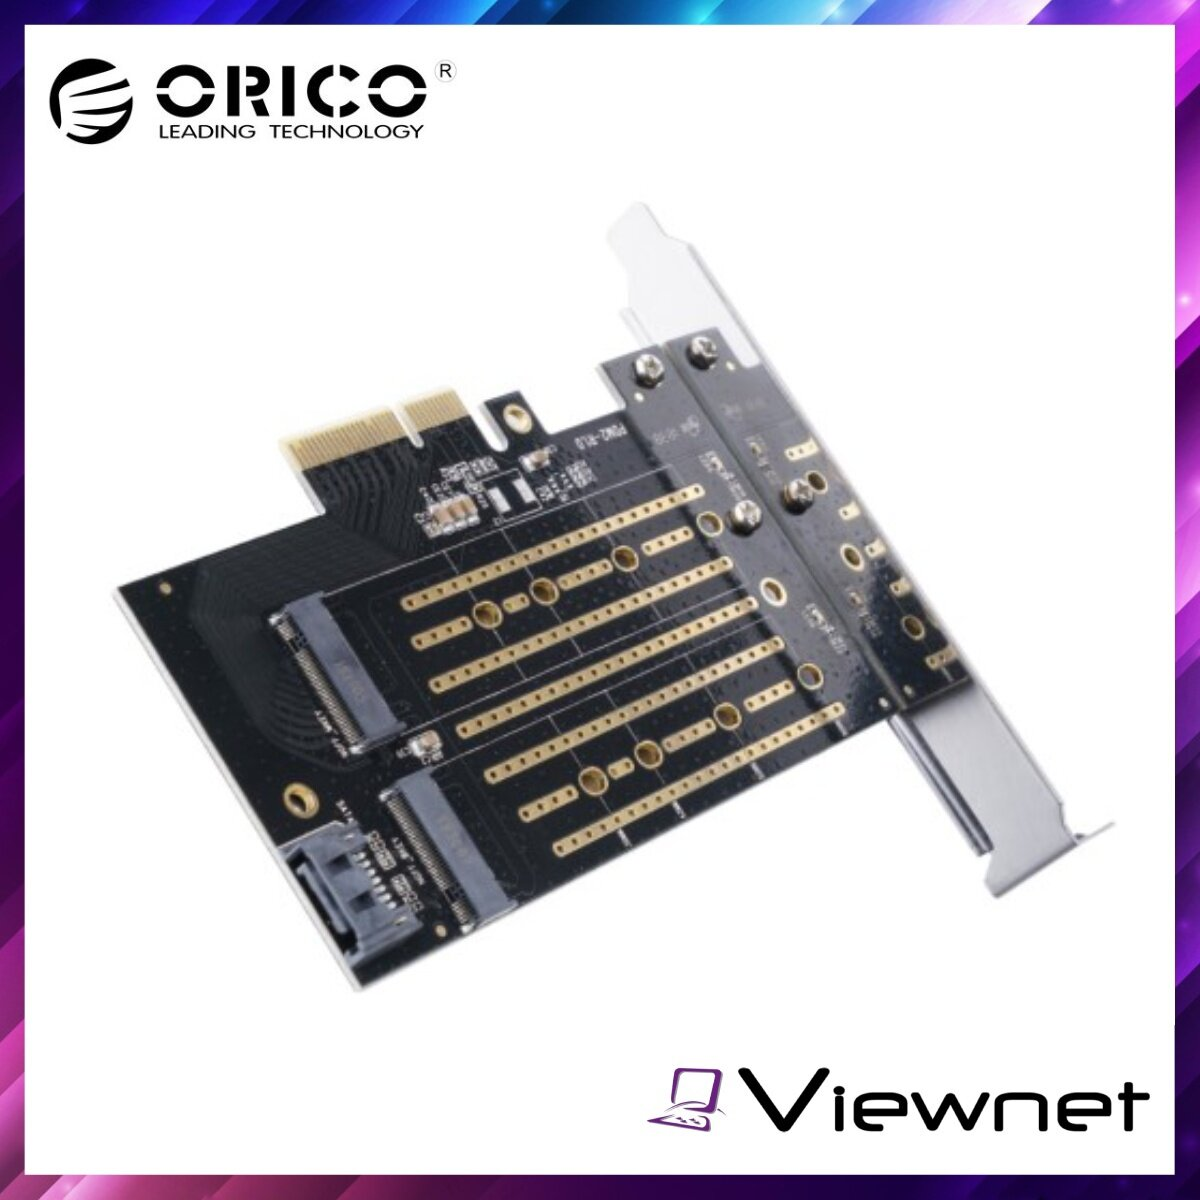 Orico M.2 NVME to PCI-E 3.0 X4 Expansion Card (ORICO-PDM2), 32G Super Speed, Supported SSD, Triple Performanc Guarantee